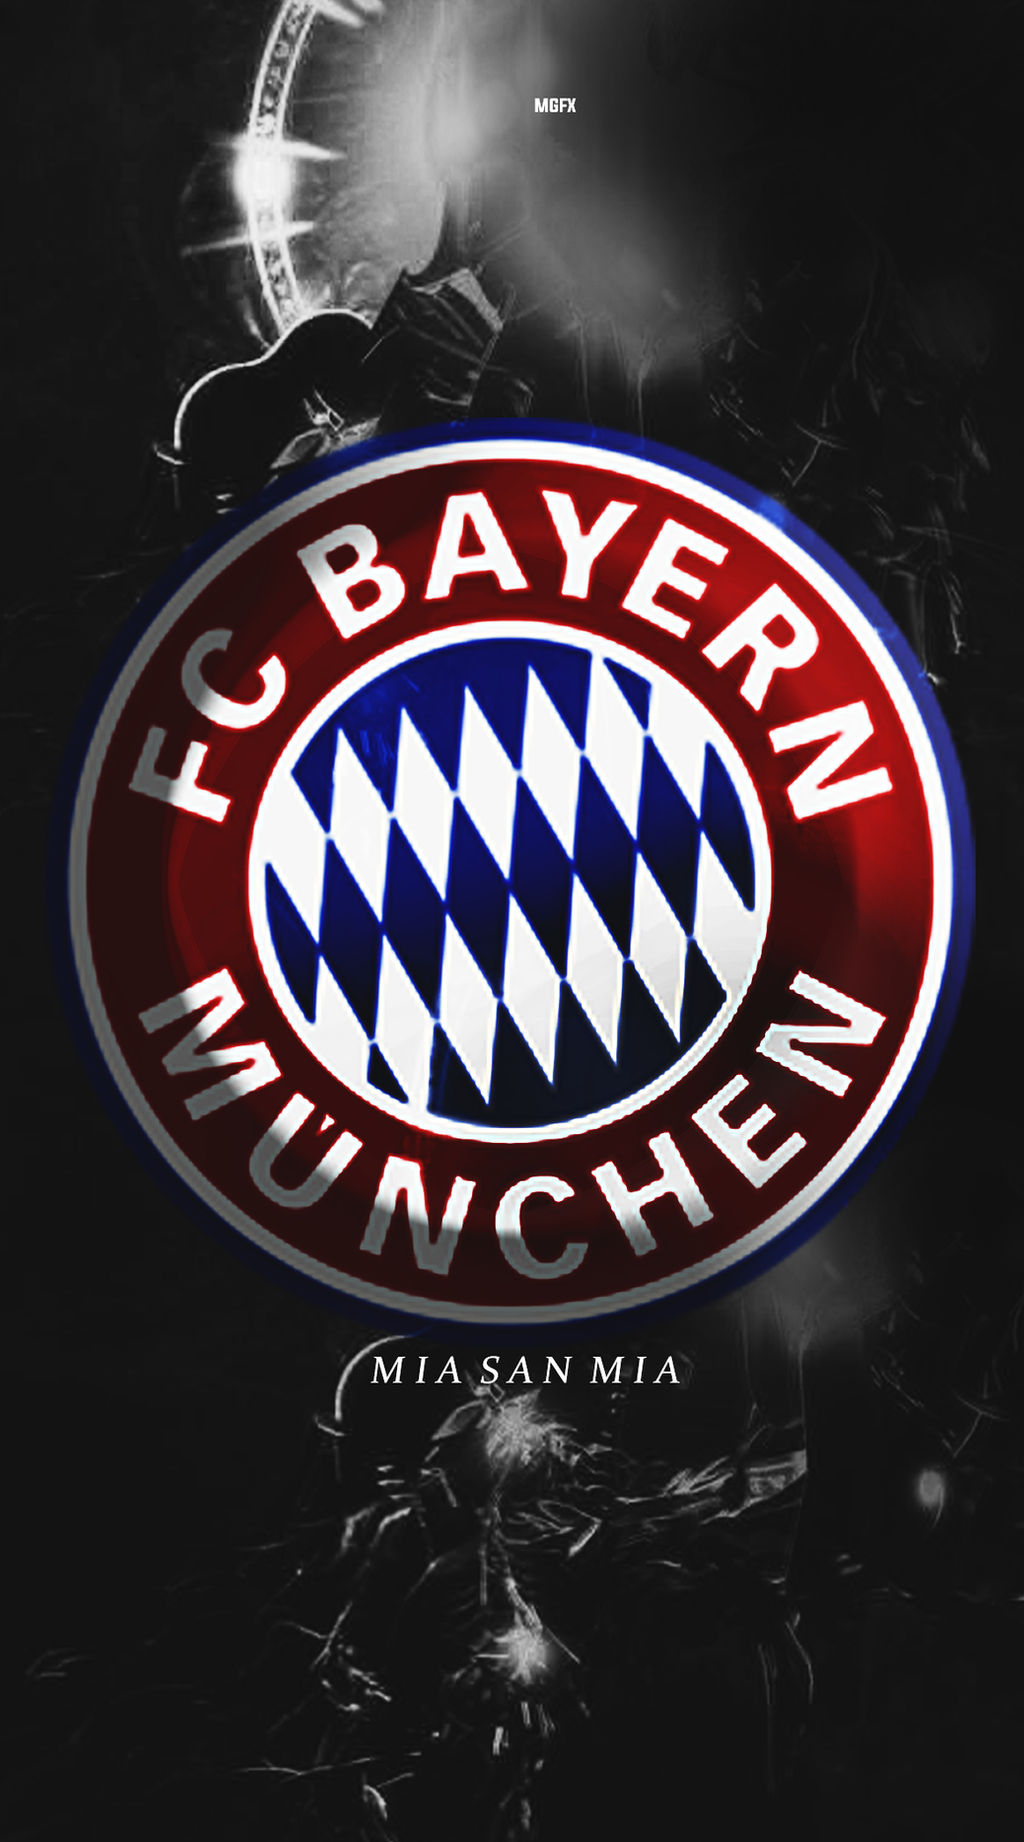 FC BAYERN MUNCHEN WALLPAPER LOCK SCREEN 2018 17 By